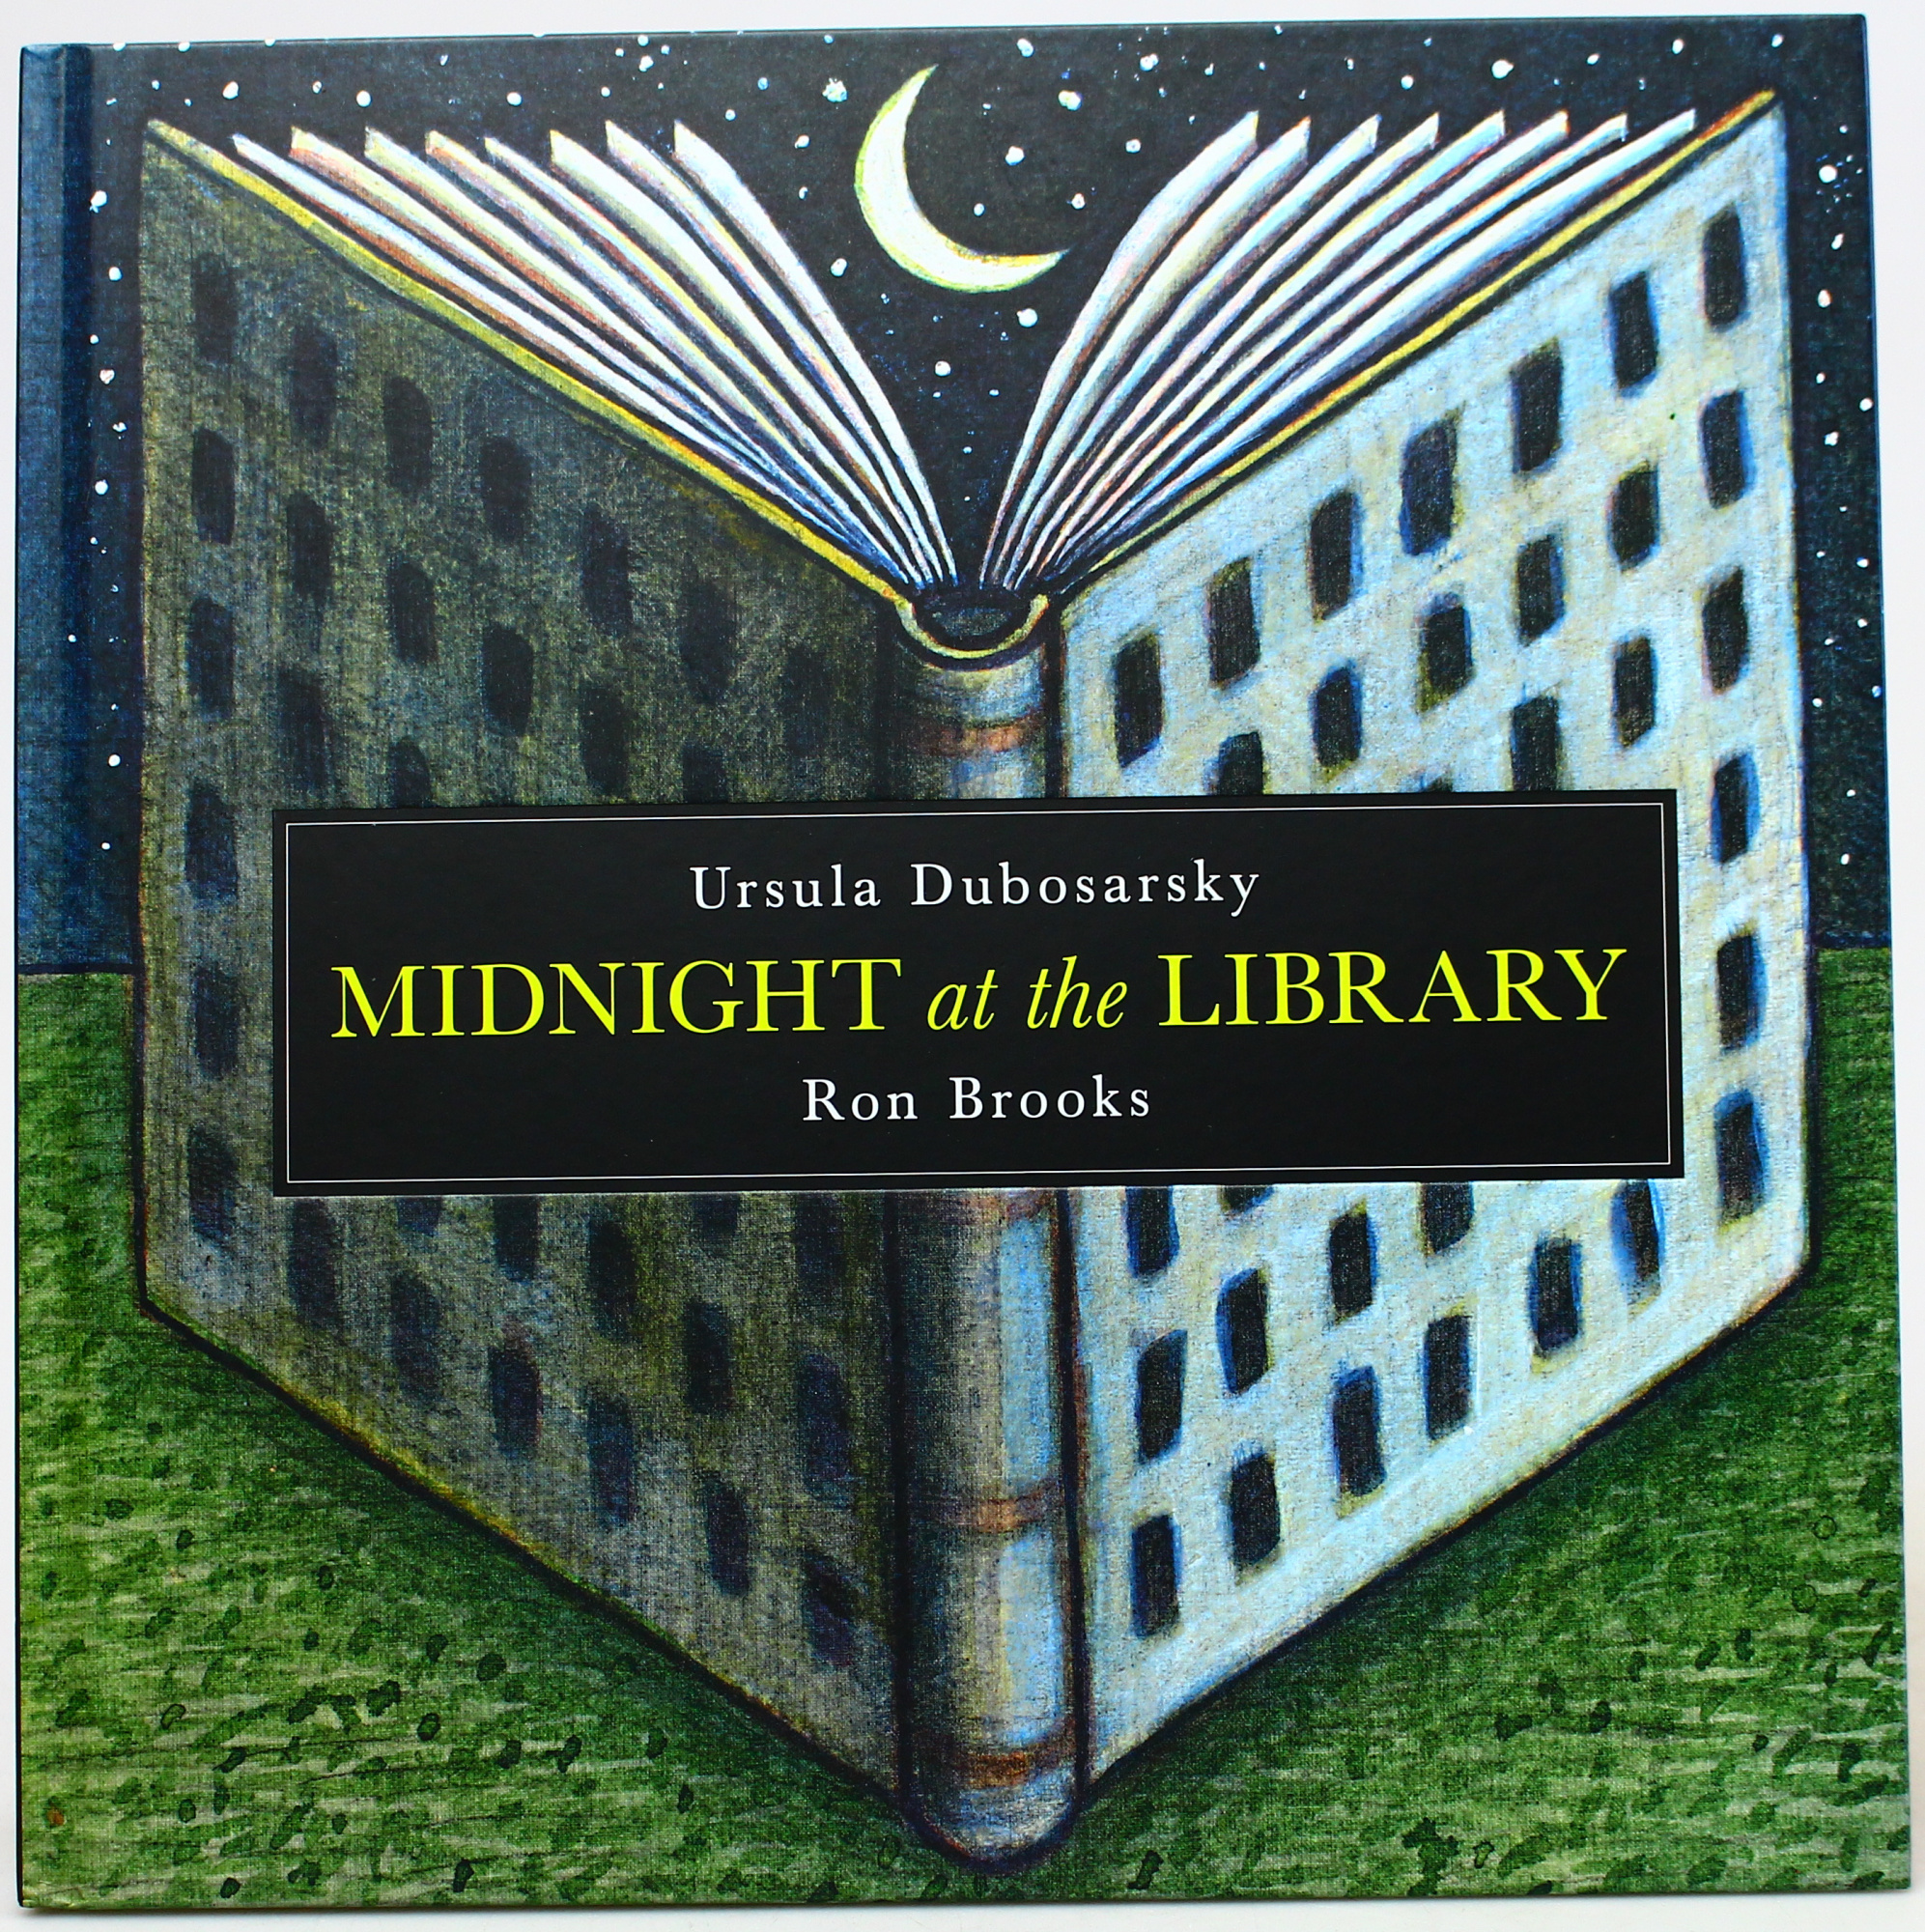 Midnight at the Library by Ursula Dubosarsky,Ron Brooks, ISBN: 9780642279316